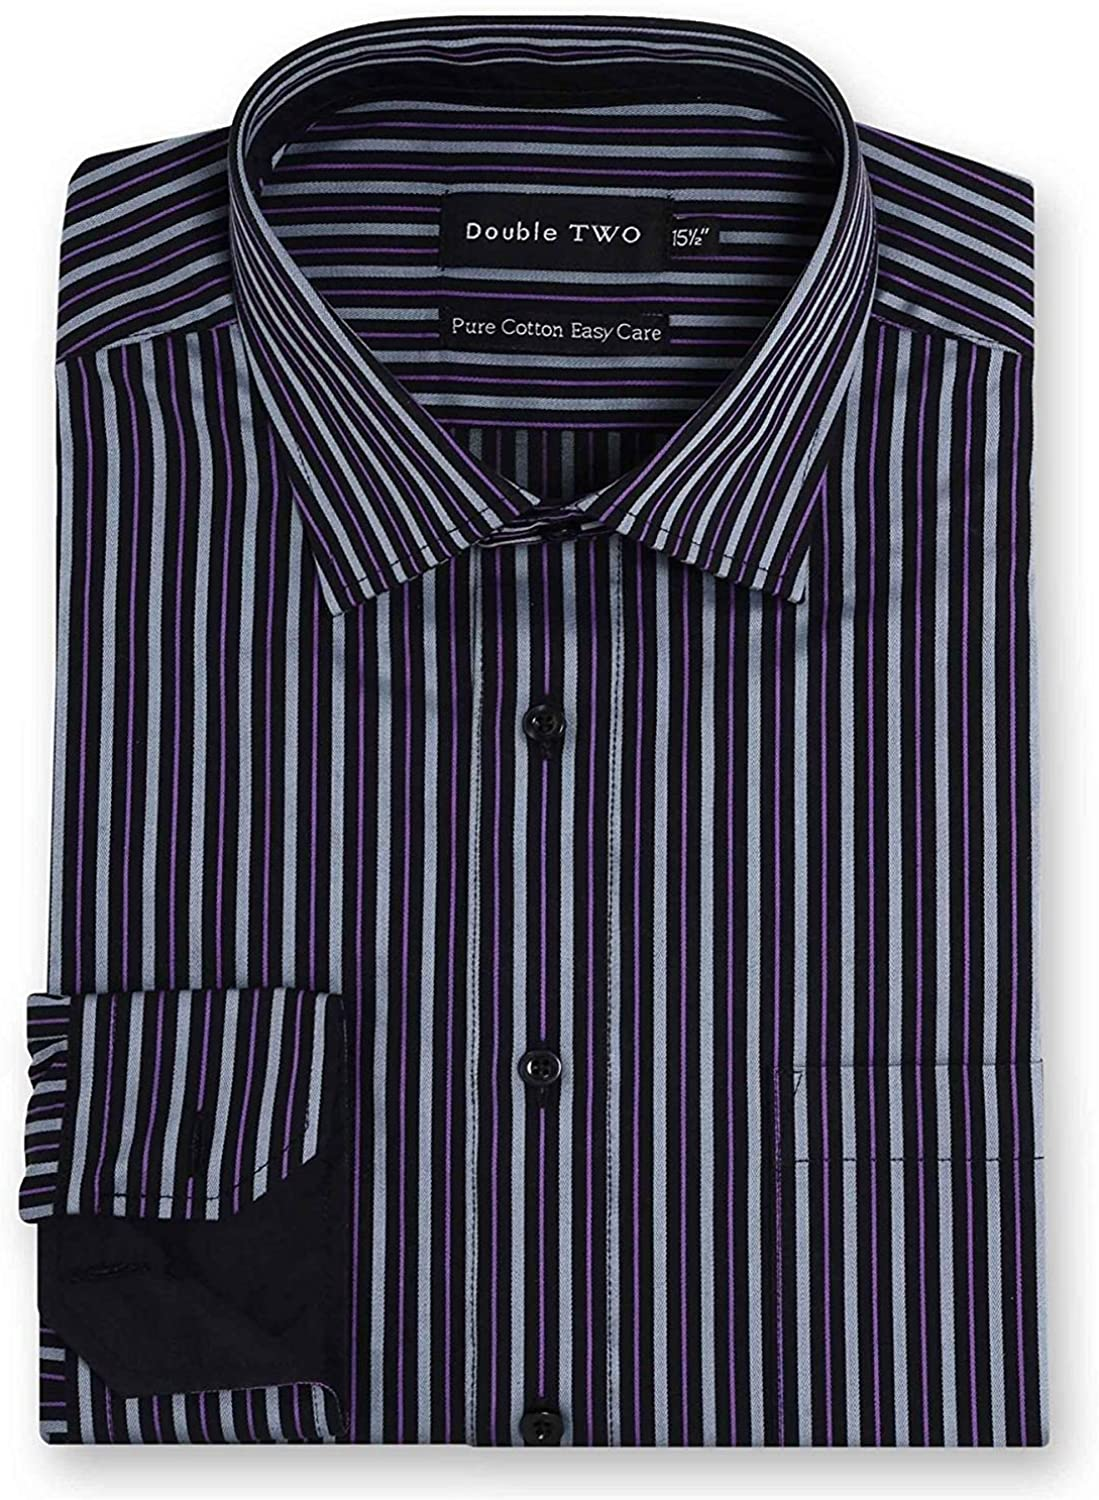 Double Two Mens Easy Care Pure Cotton LS Dark Striped Shirts